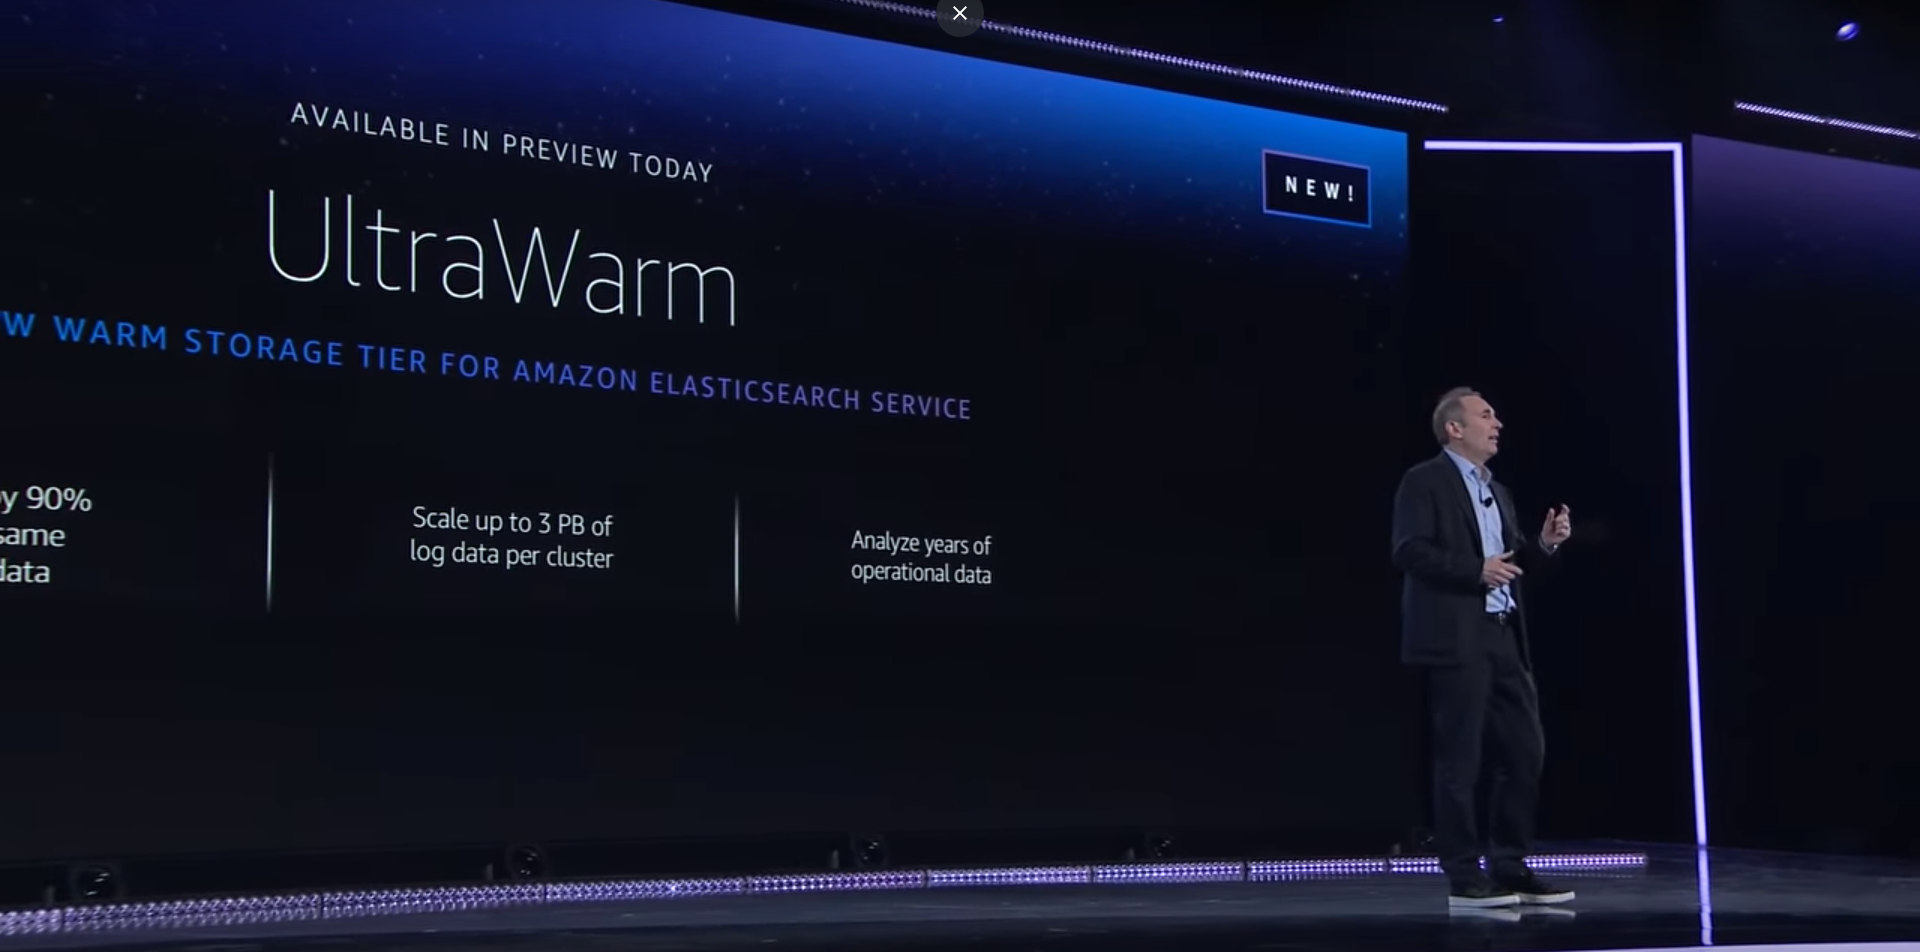 AWS CEO Andy Jassy announcing Amazon UltraWarm at AWS re:Invent 2019